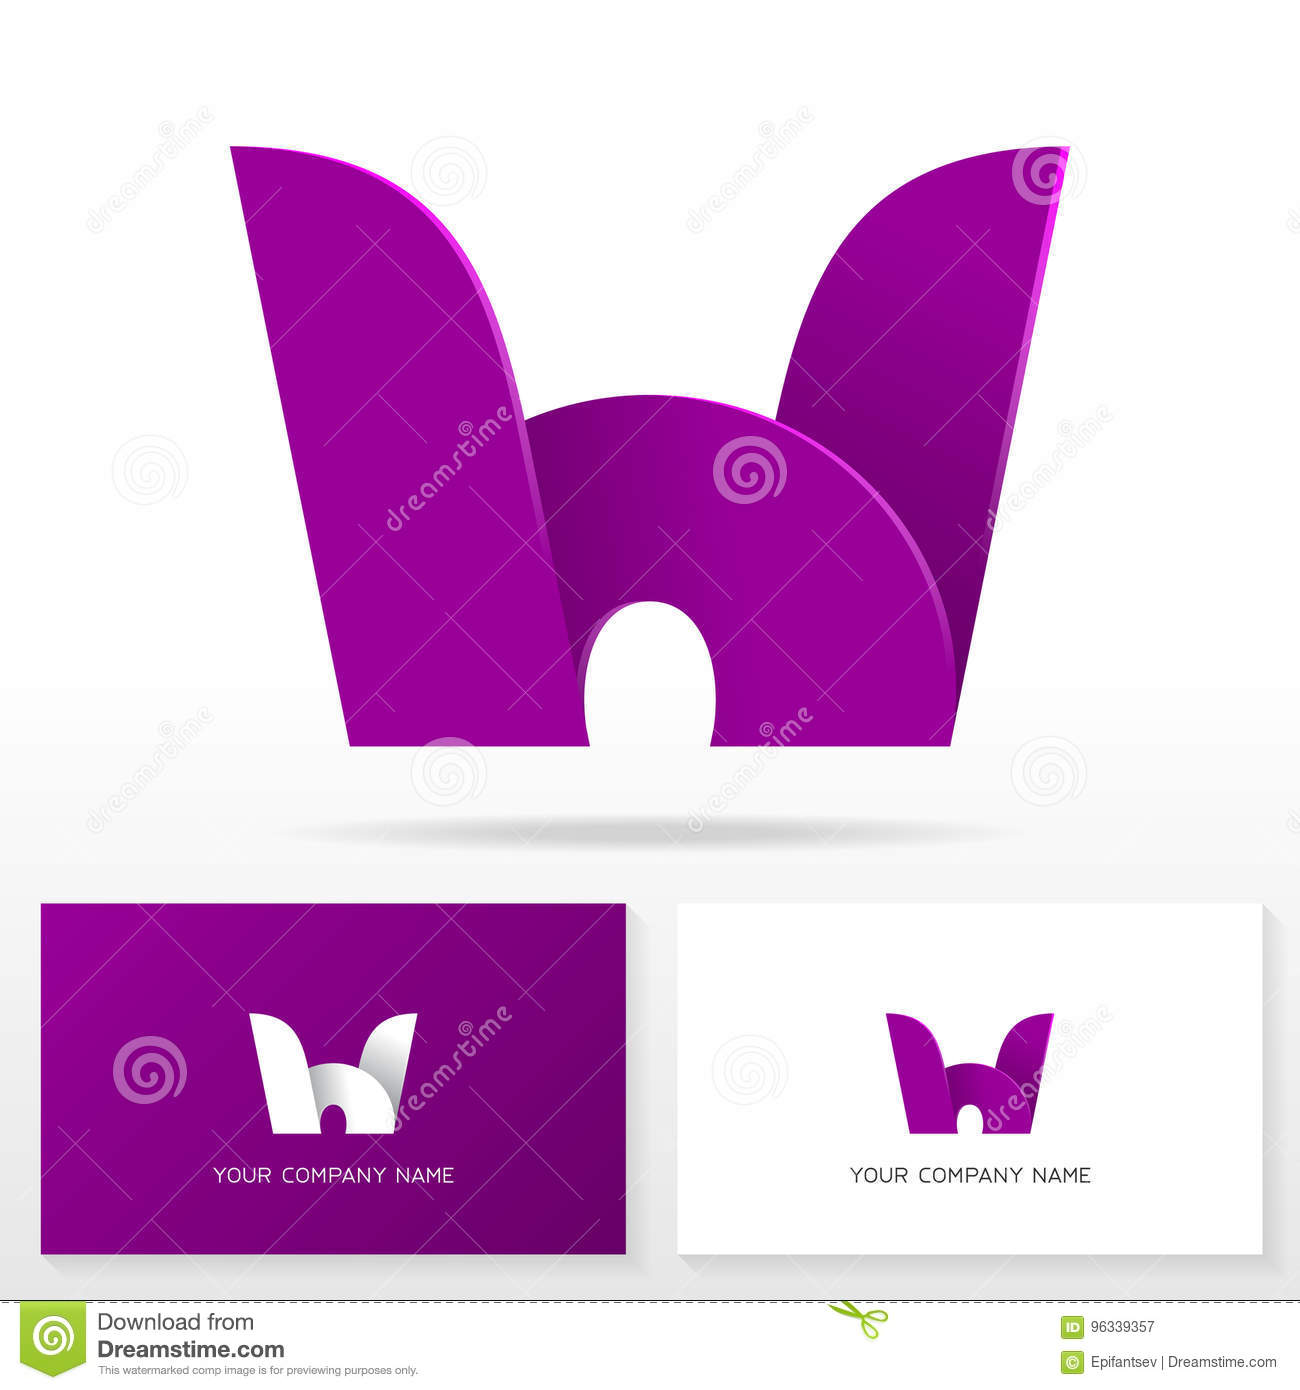 Letter h logo icon design template business card templates stock download letter h logo icon design template business card templates stock vector illustration of spiritdancerdesigns Image collections